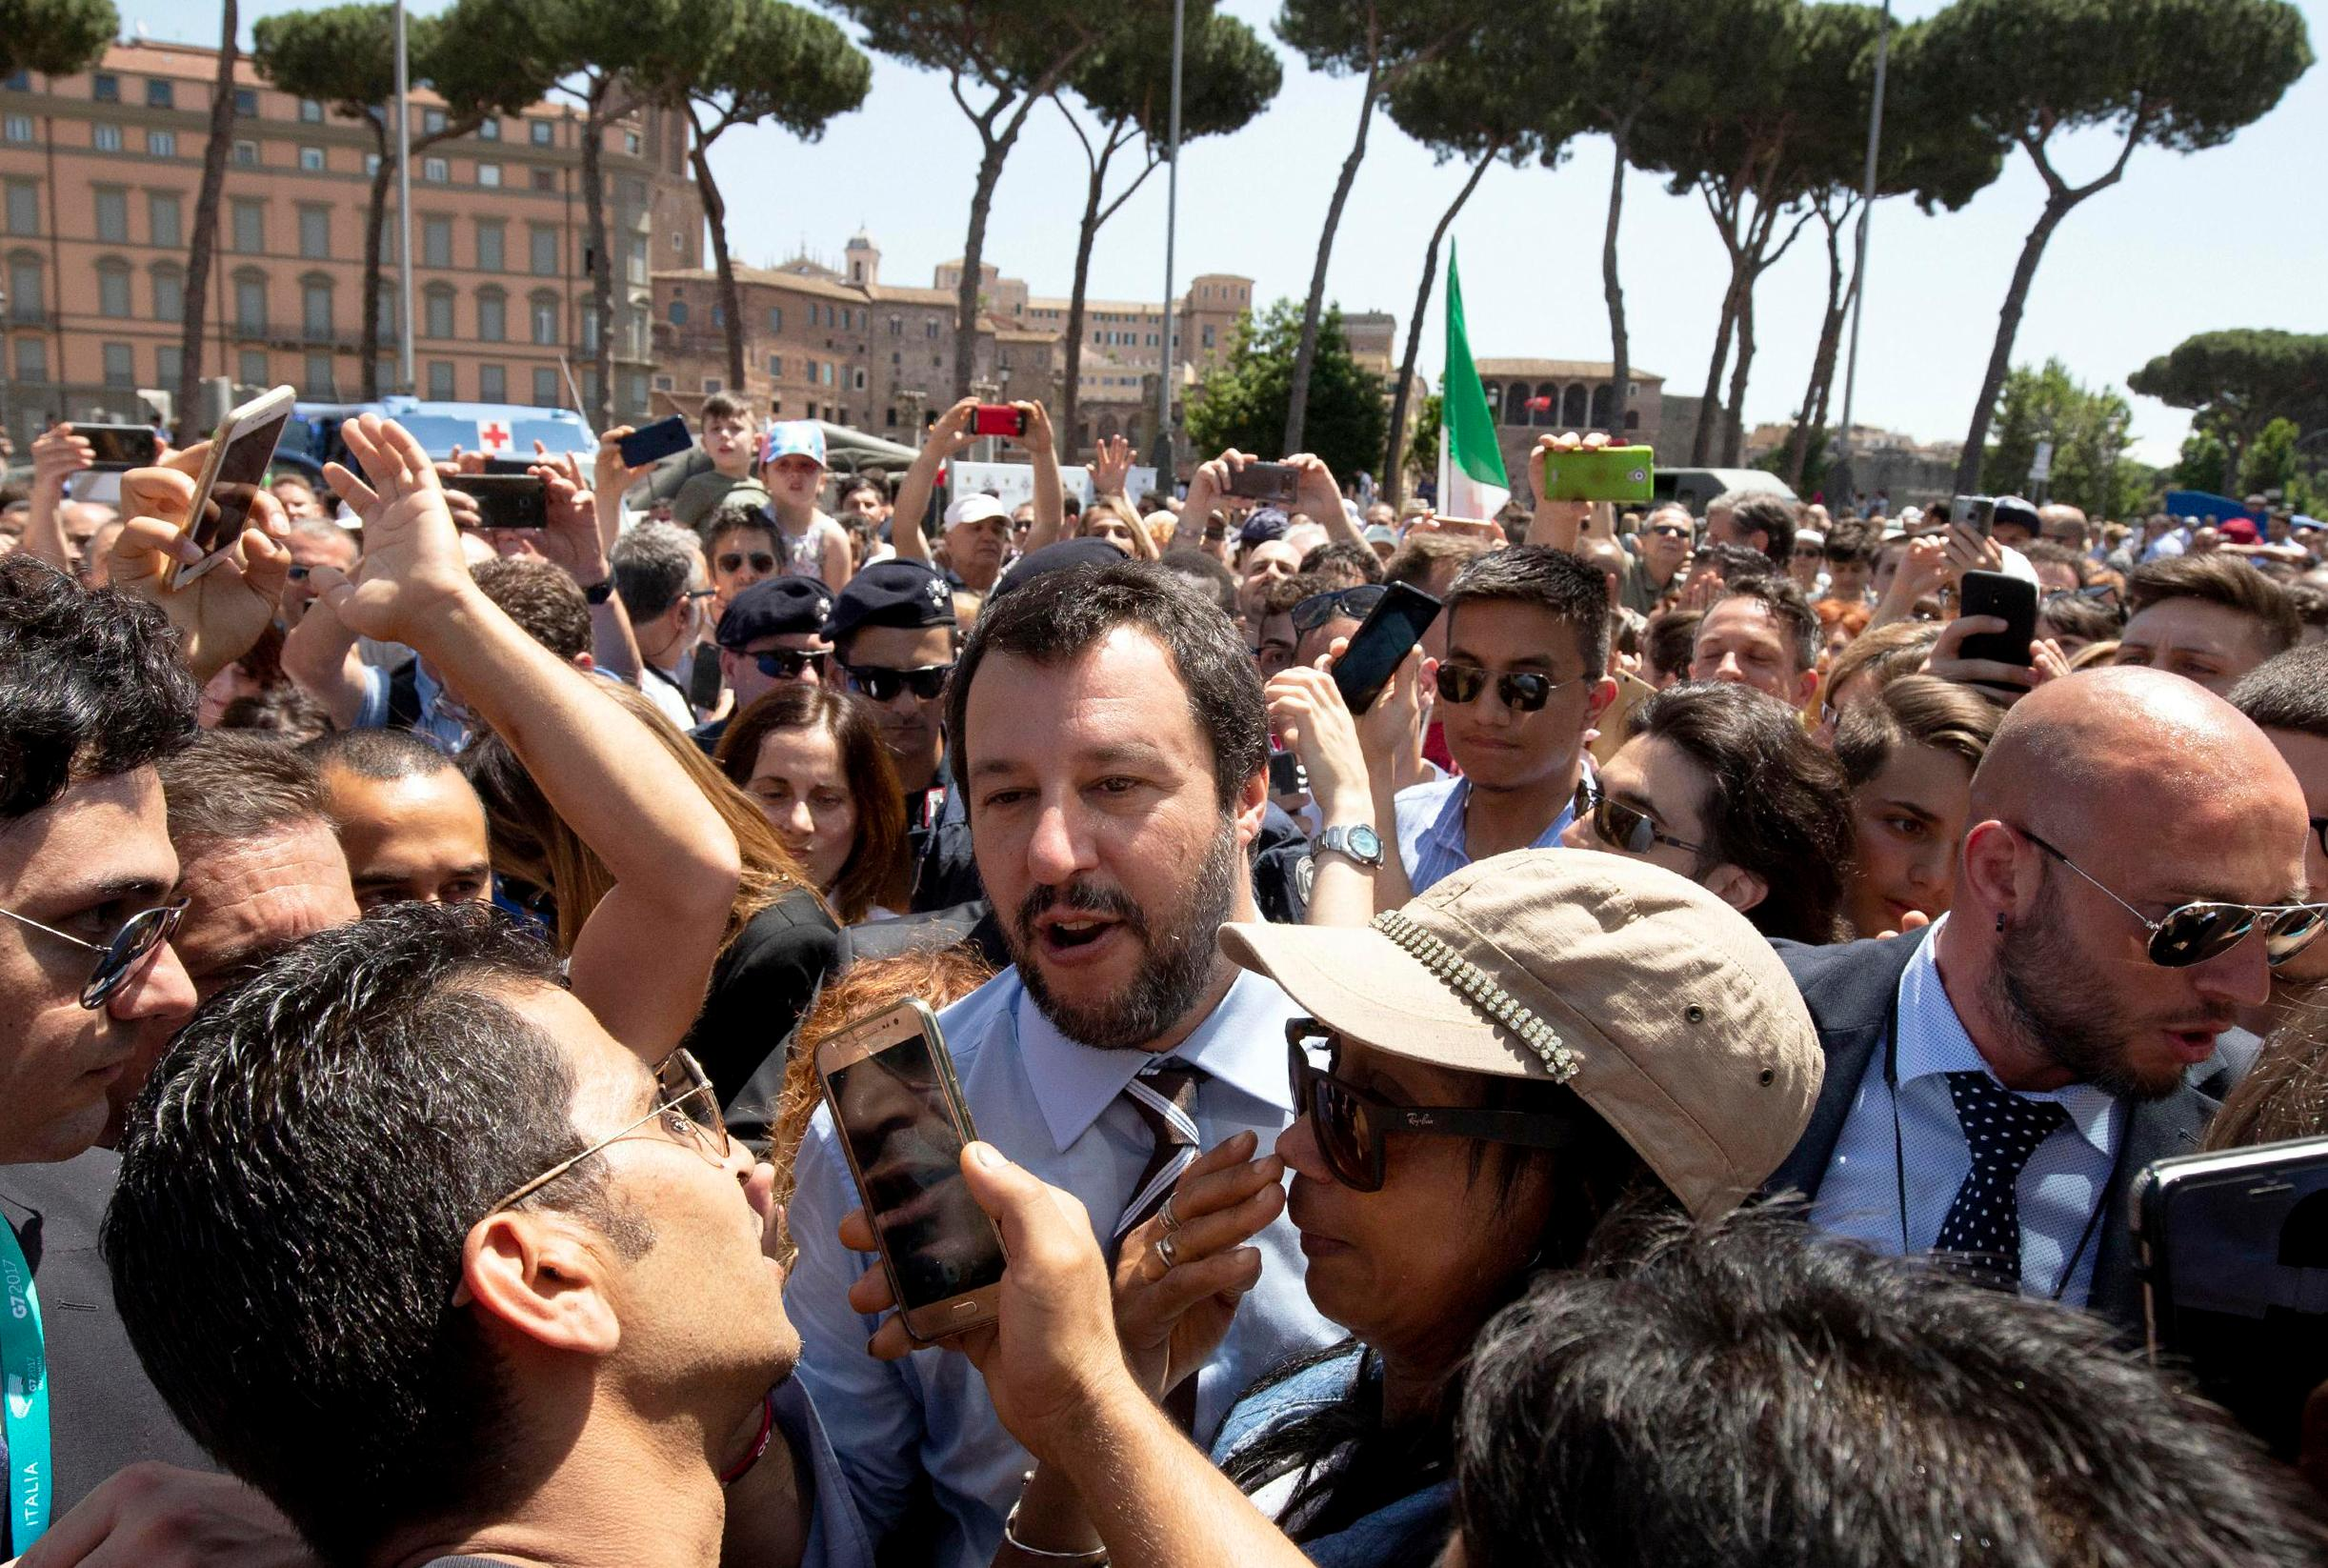 Leader of the League party and Italian Interior Minister, Matteo Salvini, walks through the crowd on the occasion of celebrations for Italy's Republic Day, in Rome Saturday, June 2, 2018.{ } (Claudio Peri/ANSA via AP)